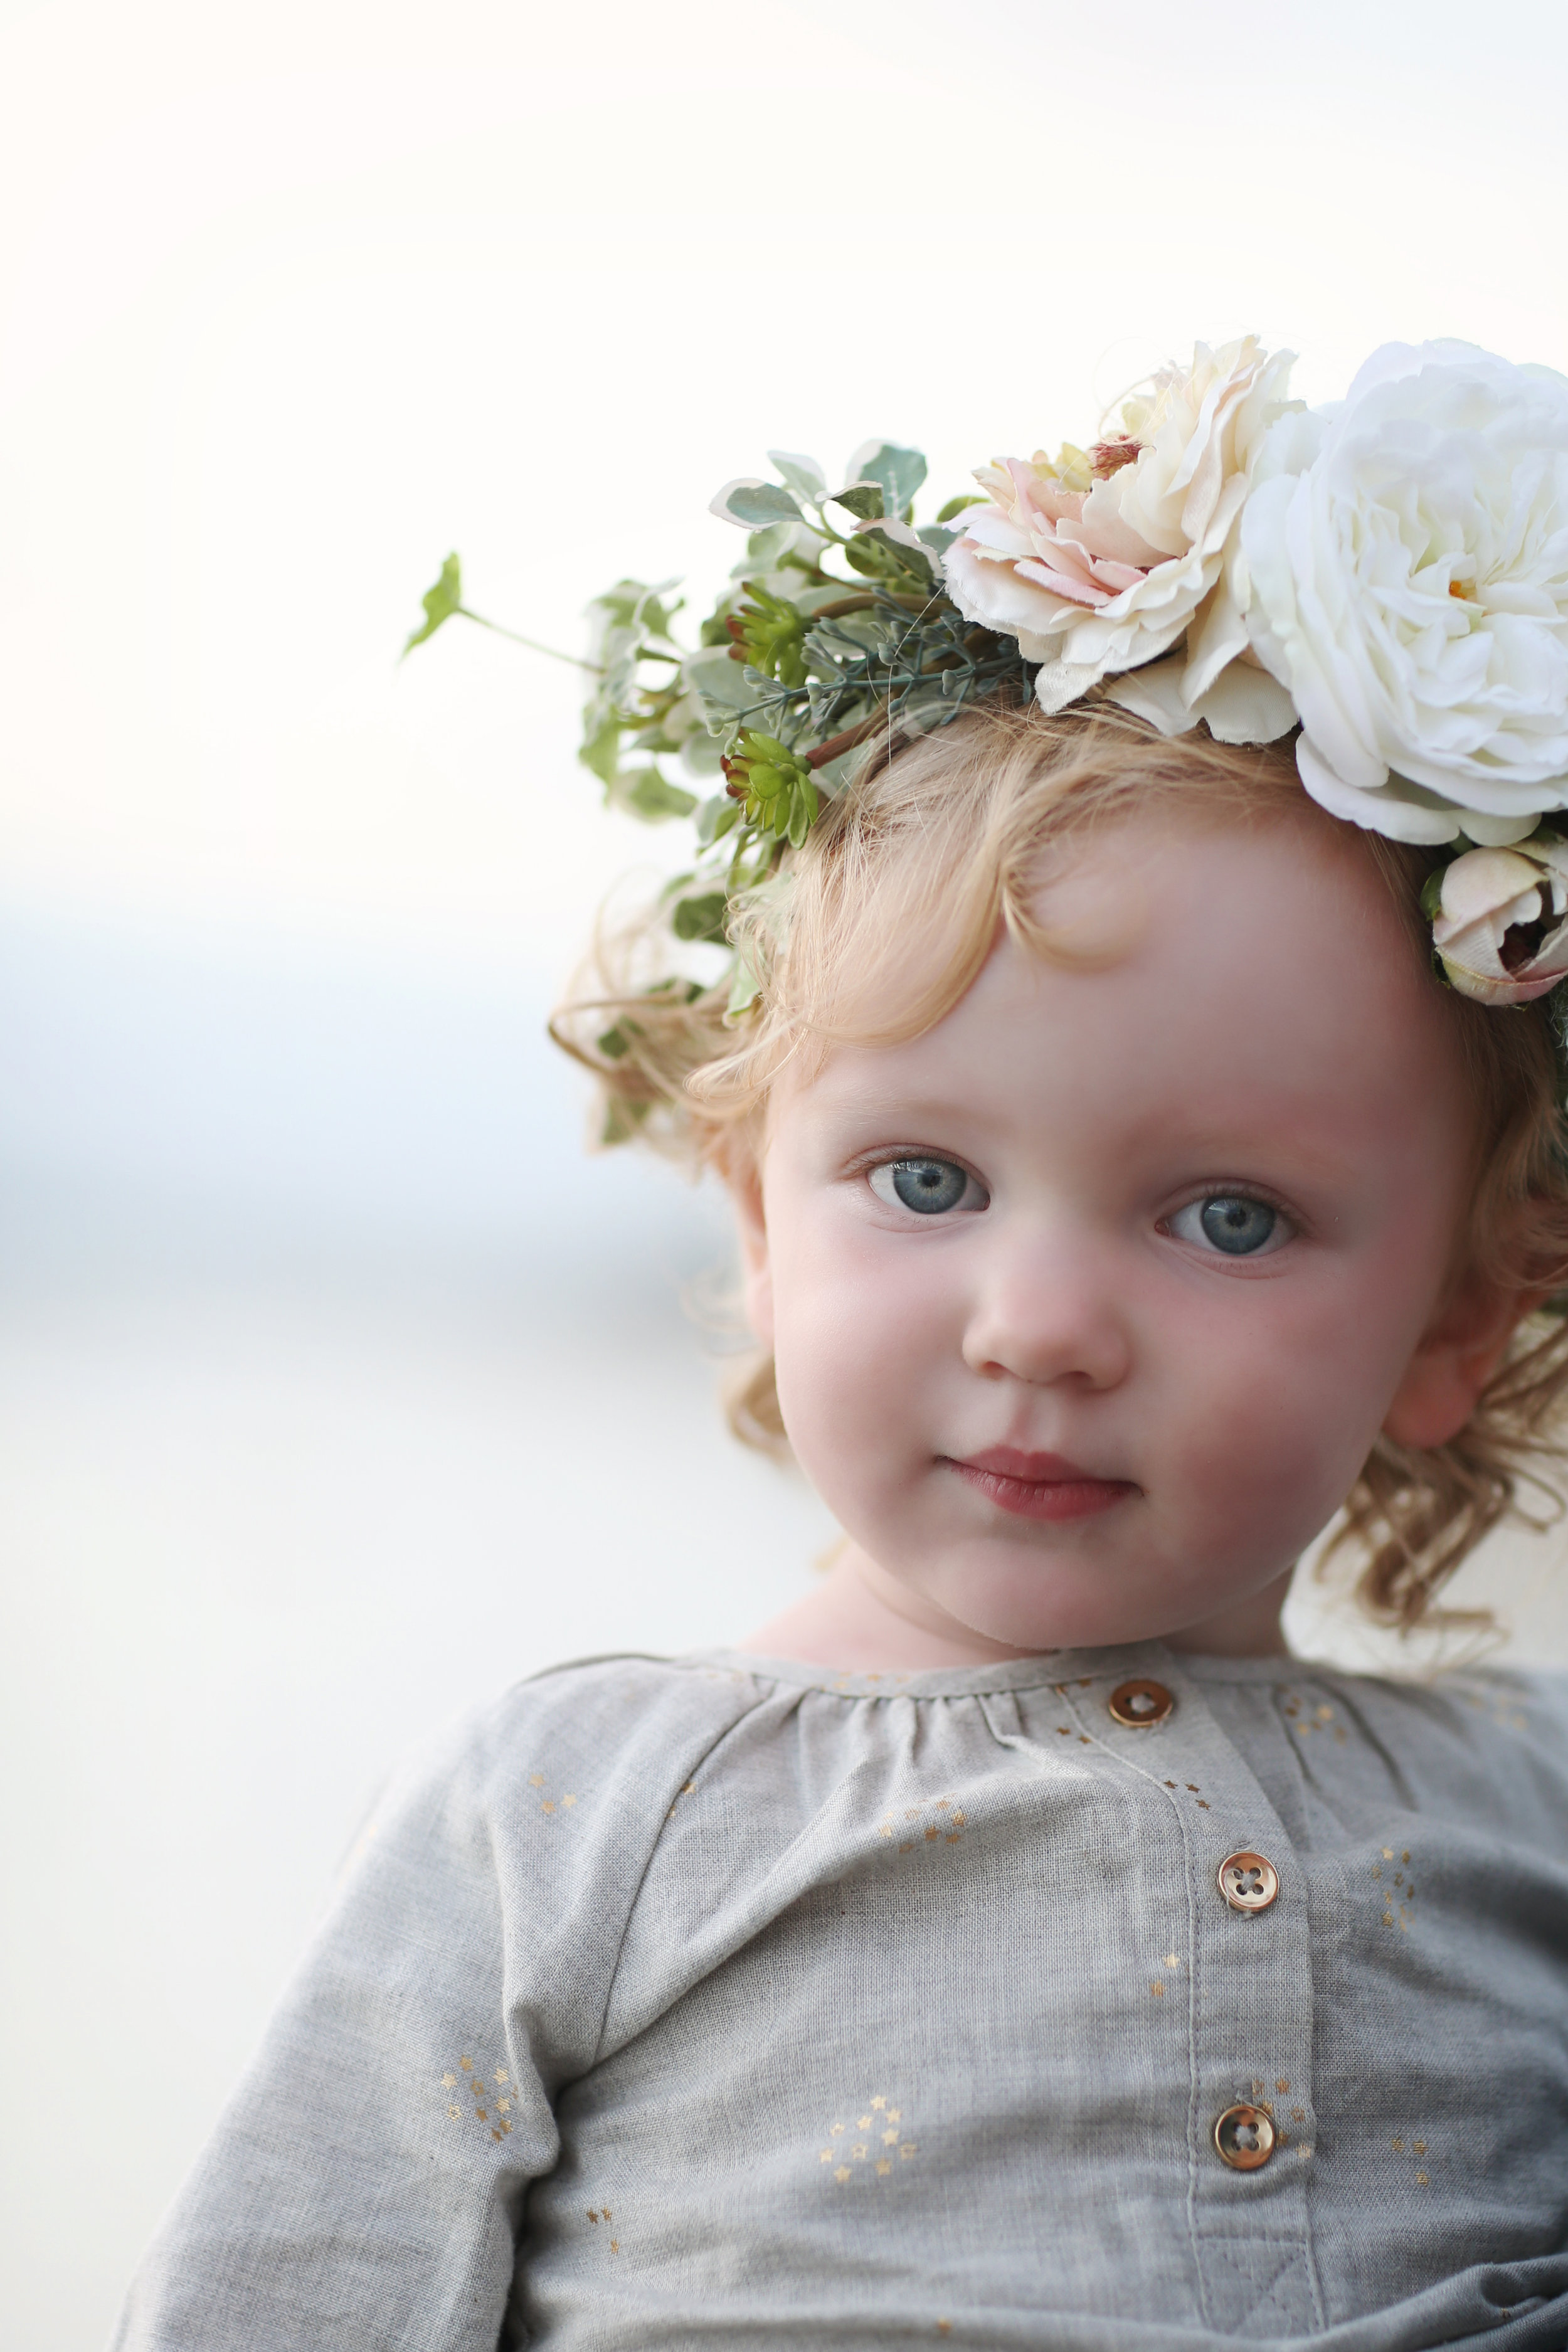 Toddler wearing a flower crown at the beach in orange county. Beach portrait of a baby.